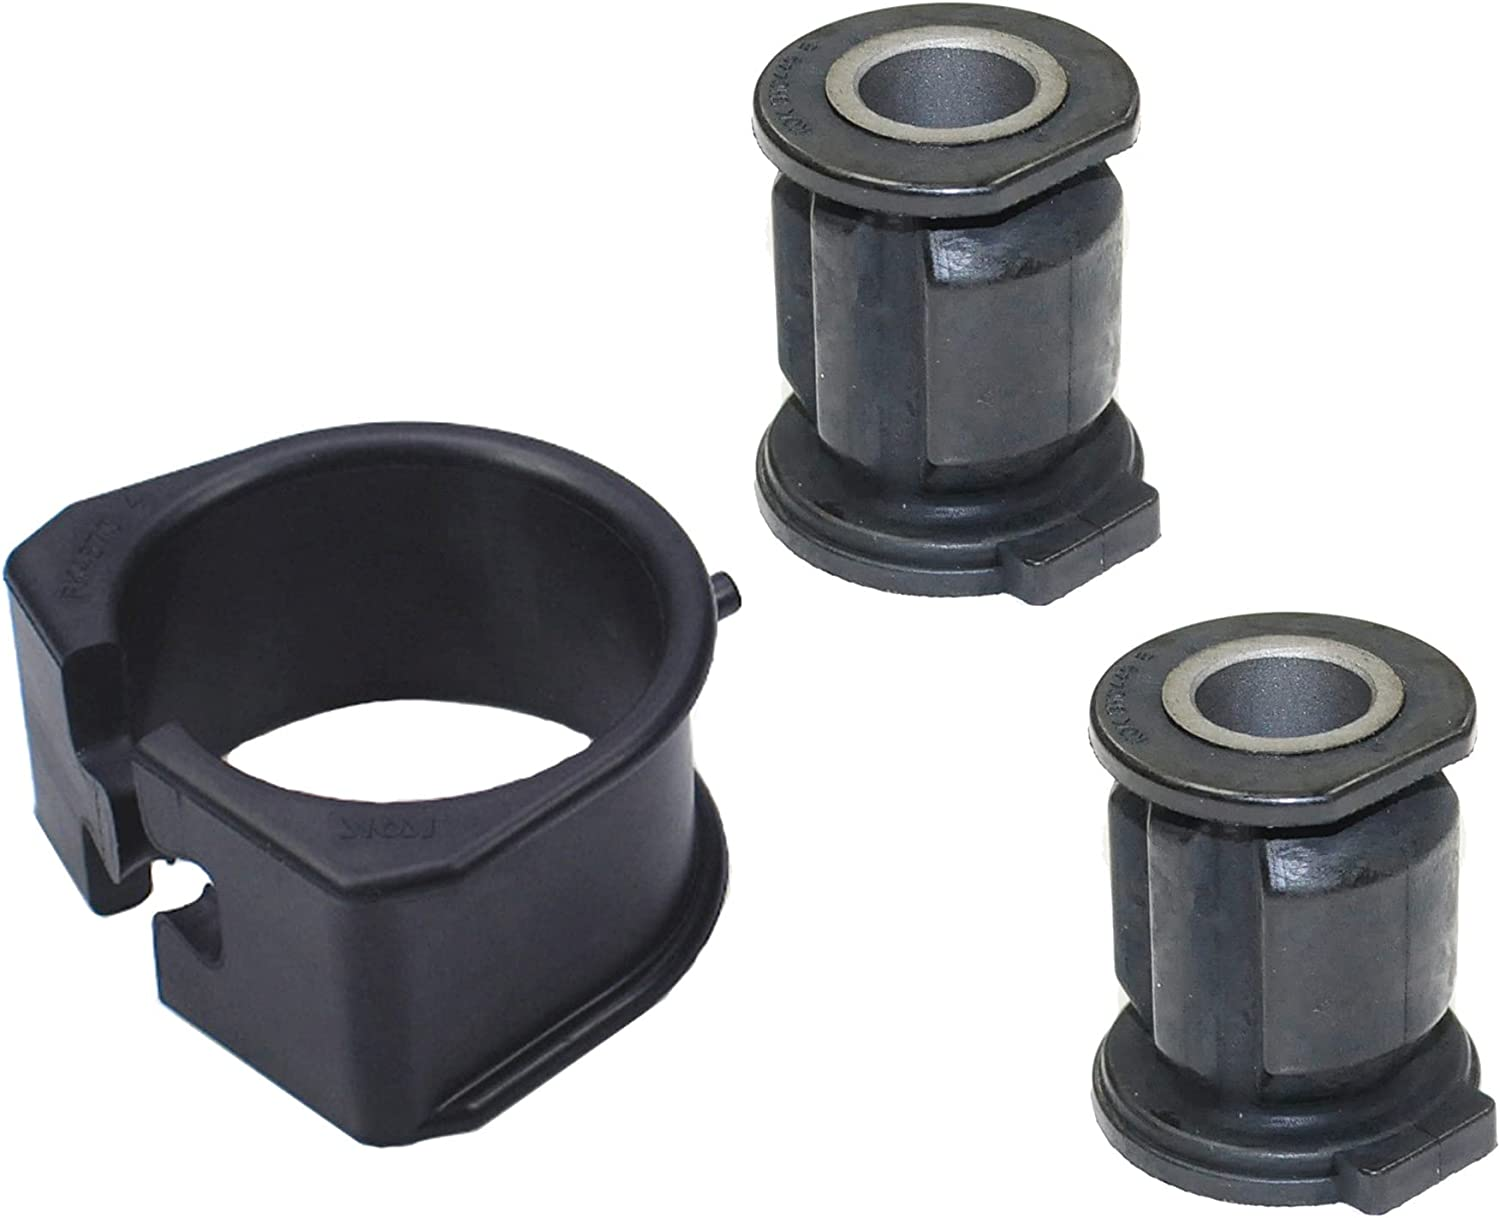 Steering specialty shop Rack Trust Pinion Bushing Kit for HUMMER 2006-2010 H3